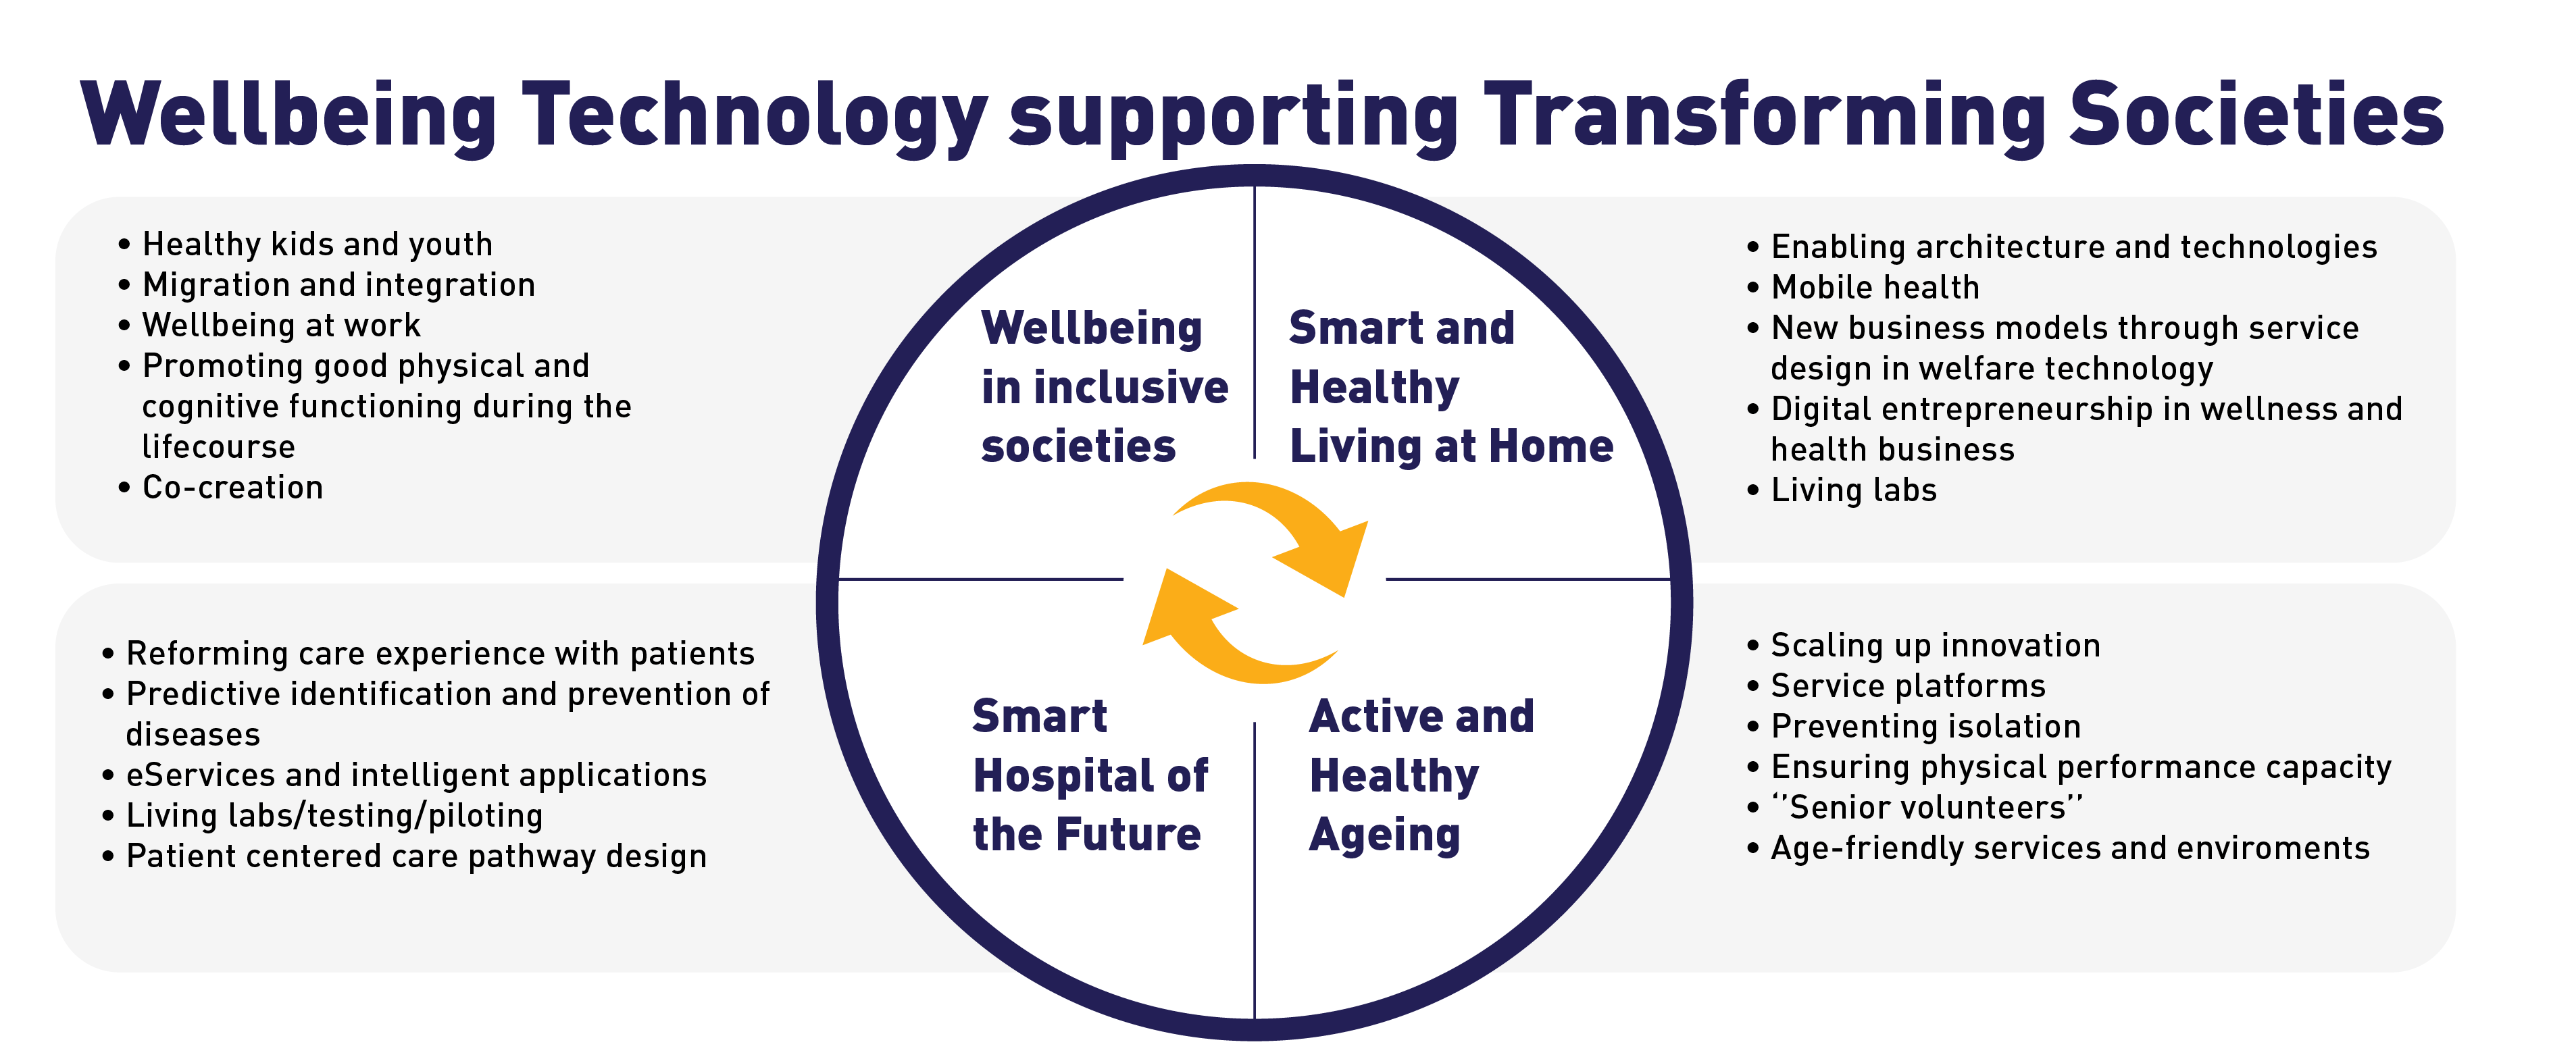 Wellbeing Technology supporting Transforming Societies.